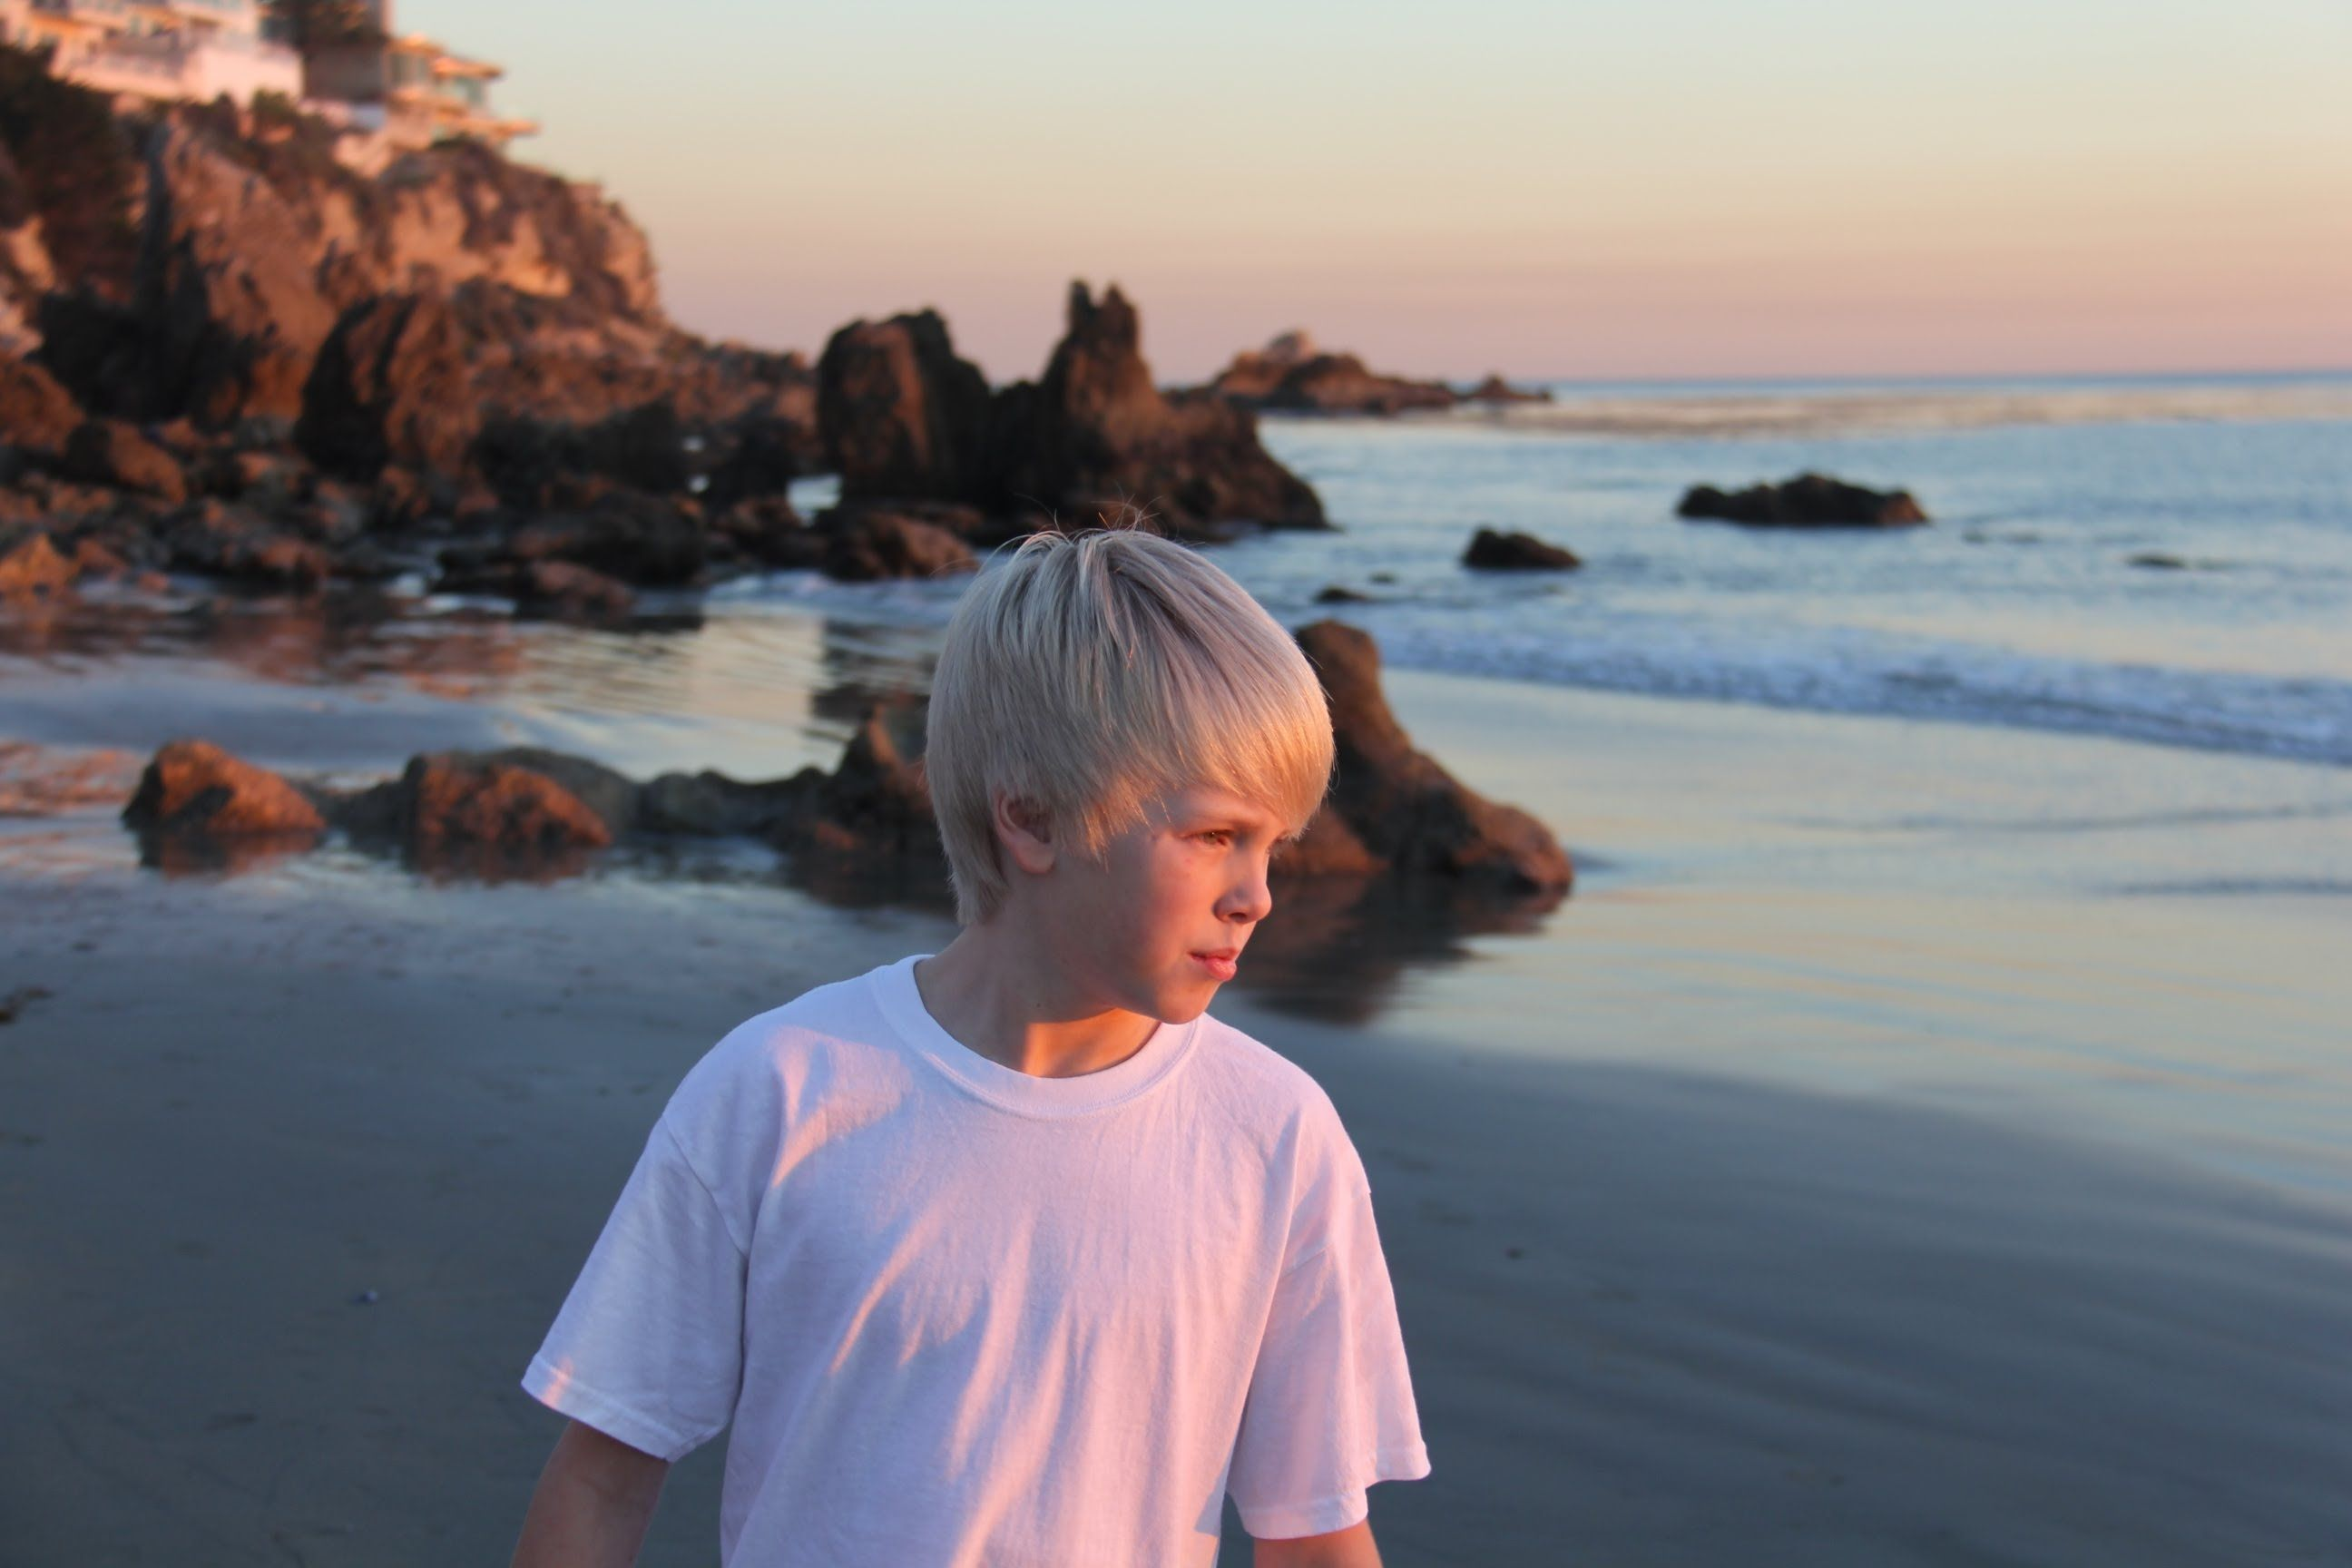 The Script - Hall of Fame ft. will.i.am cover by Carson Lueders (+playlist)